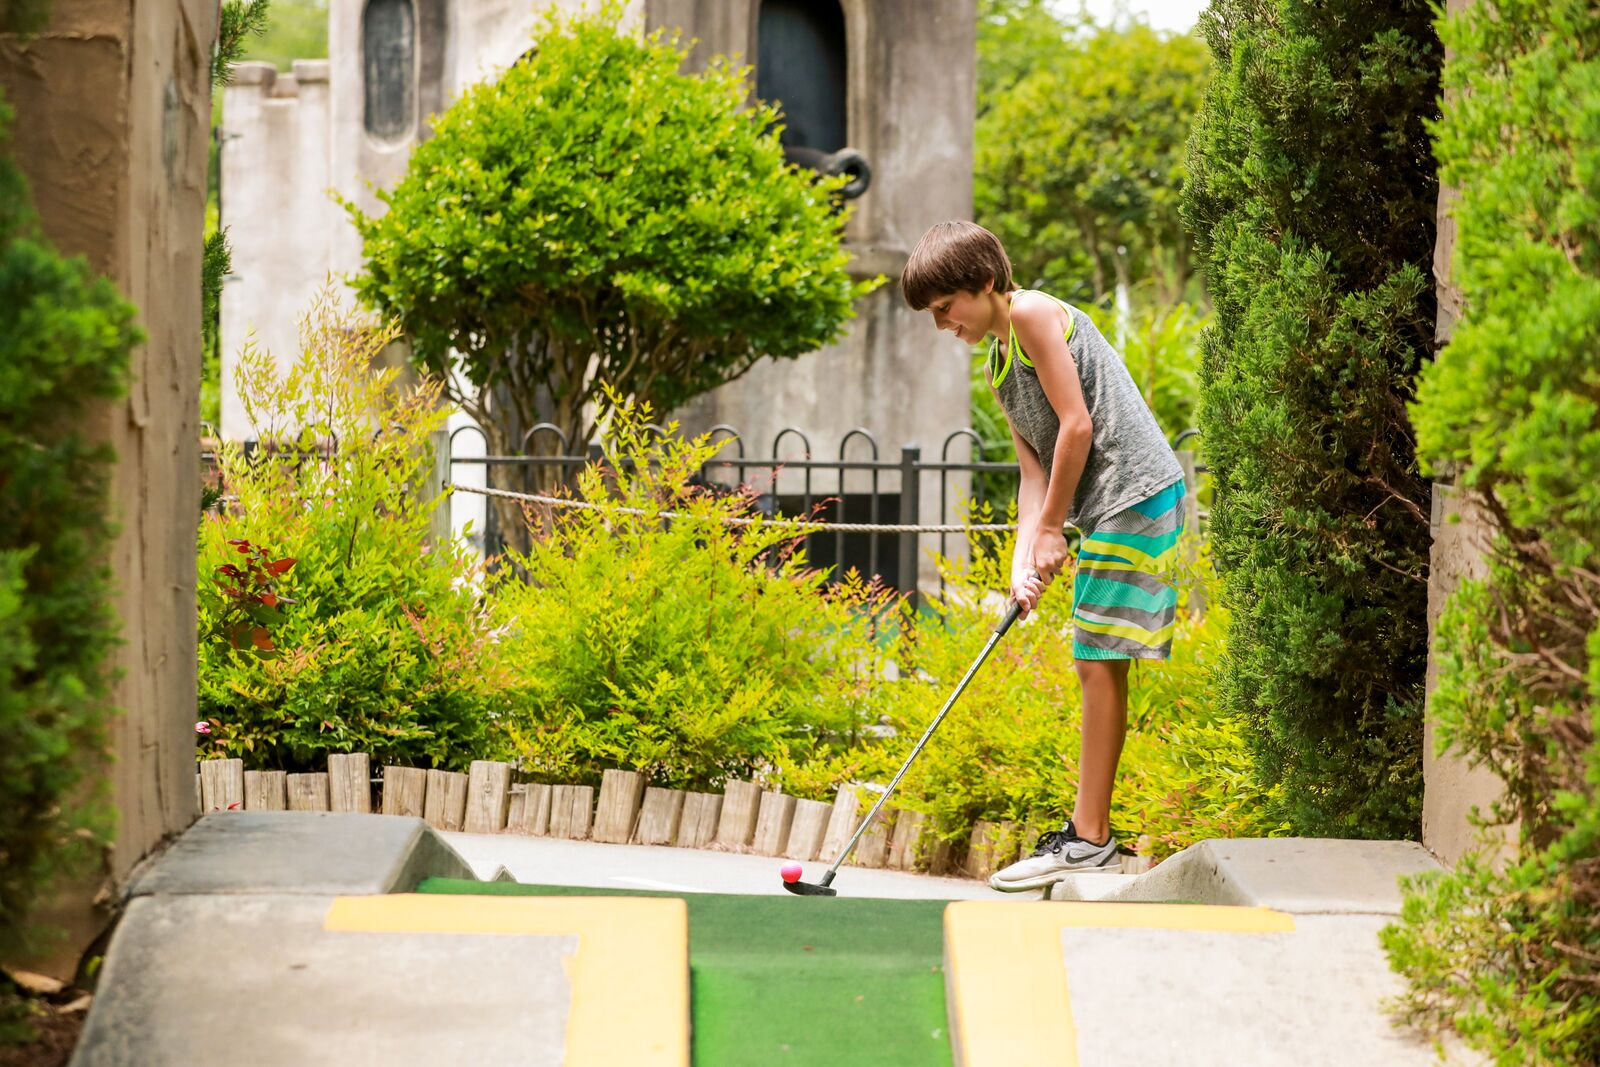 Palm Springs Best Miniature Golf Course